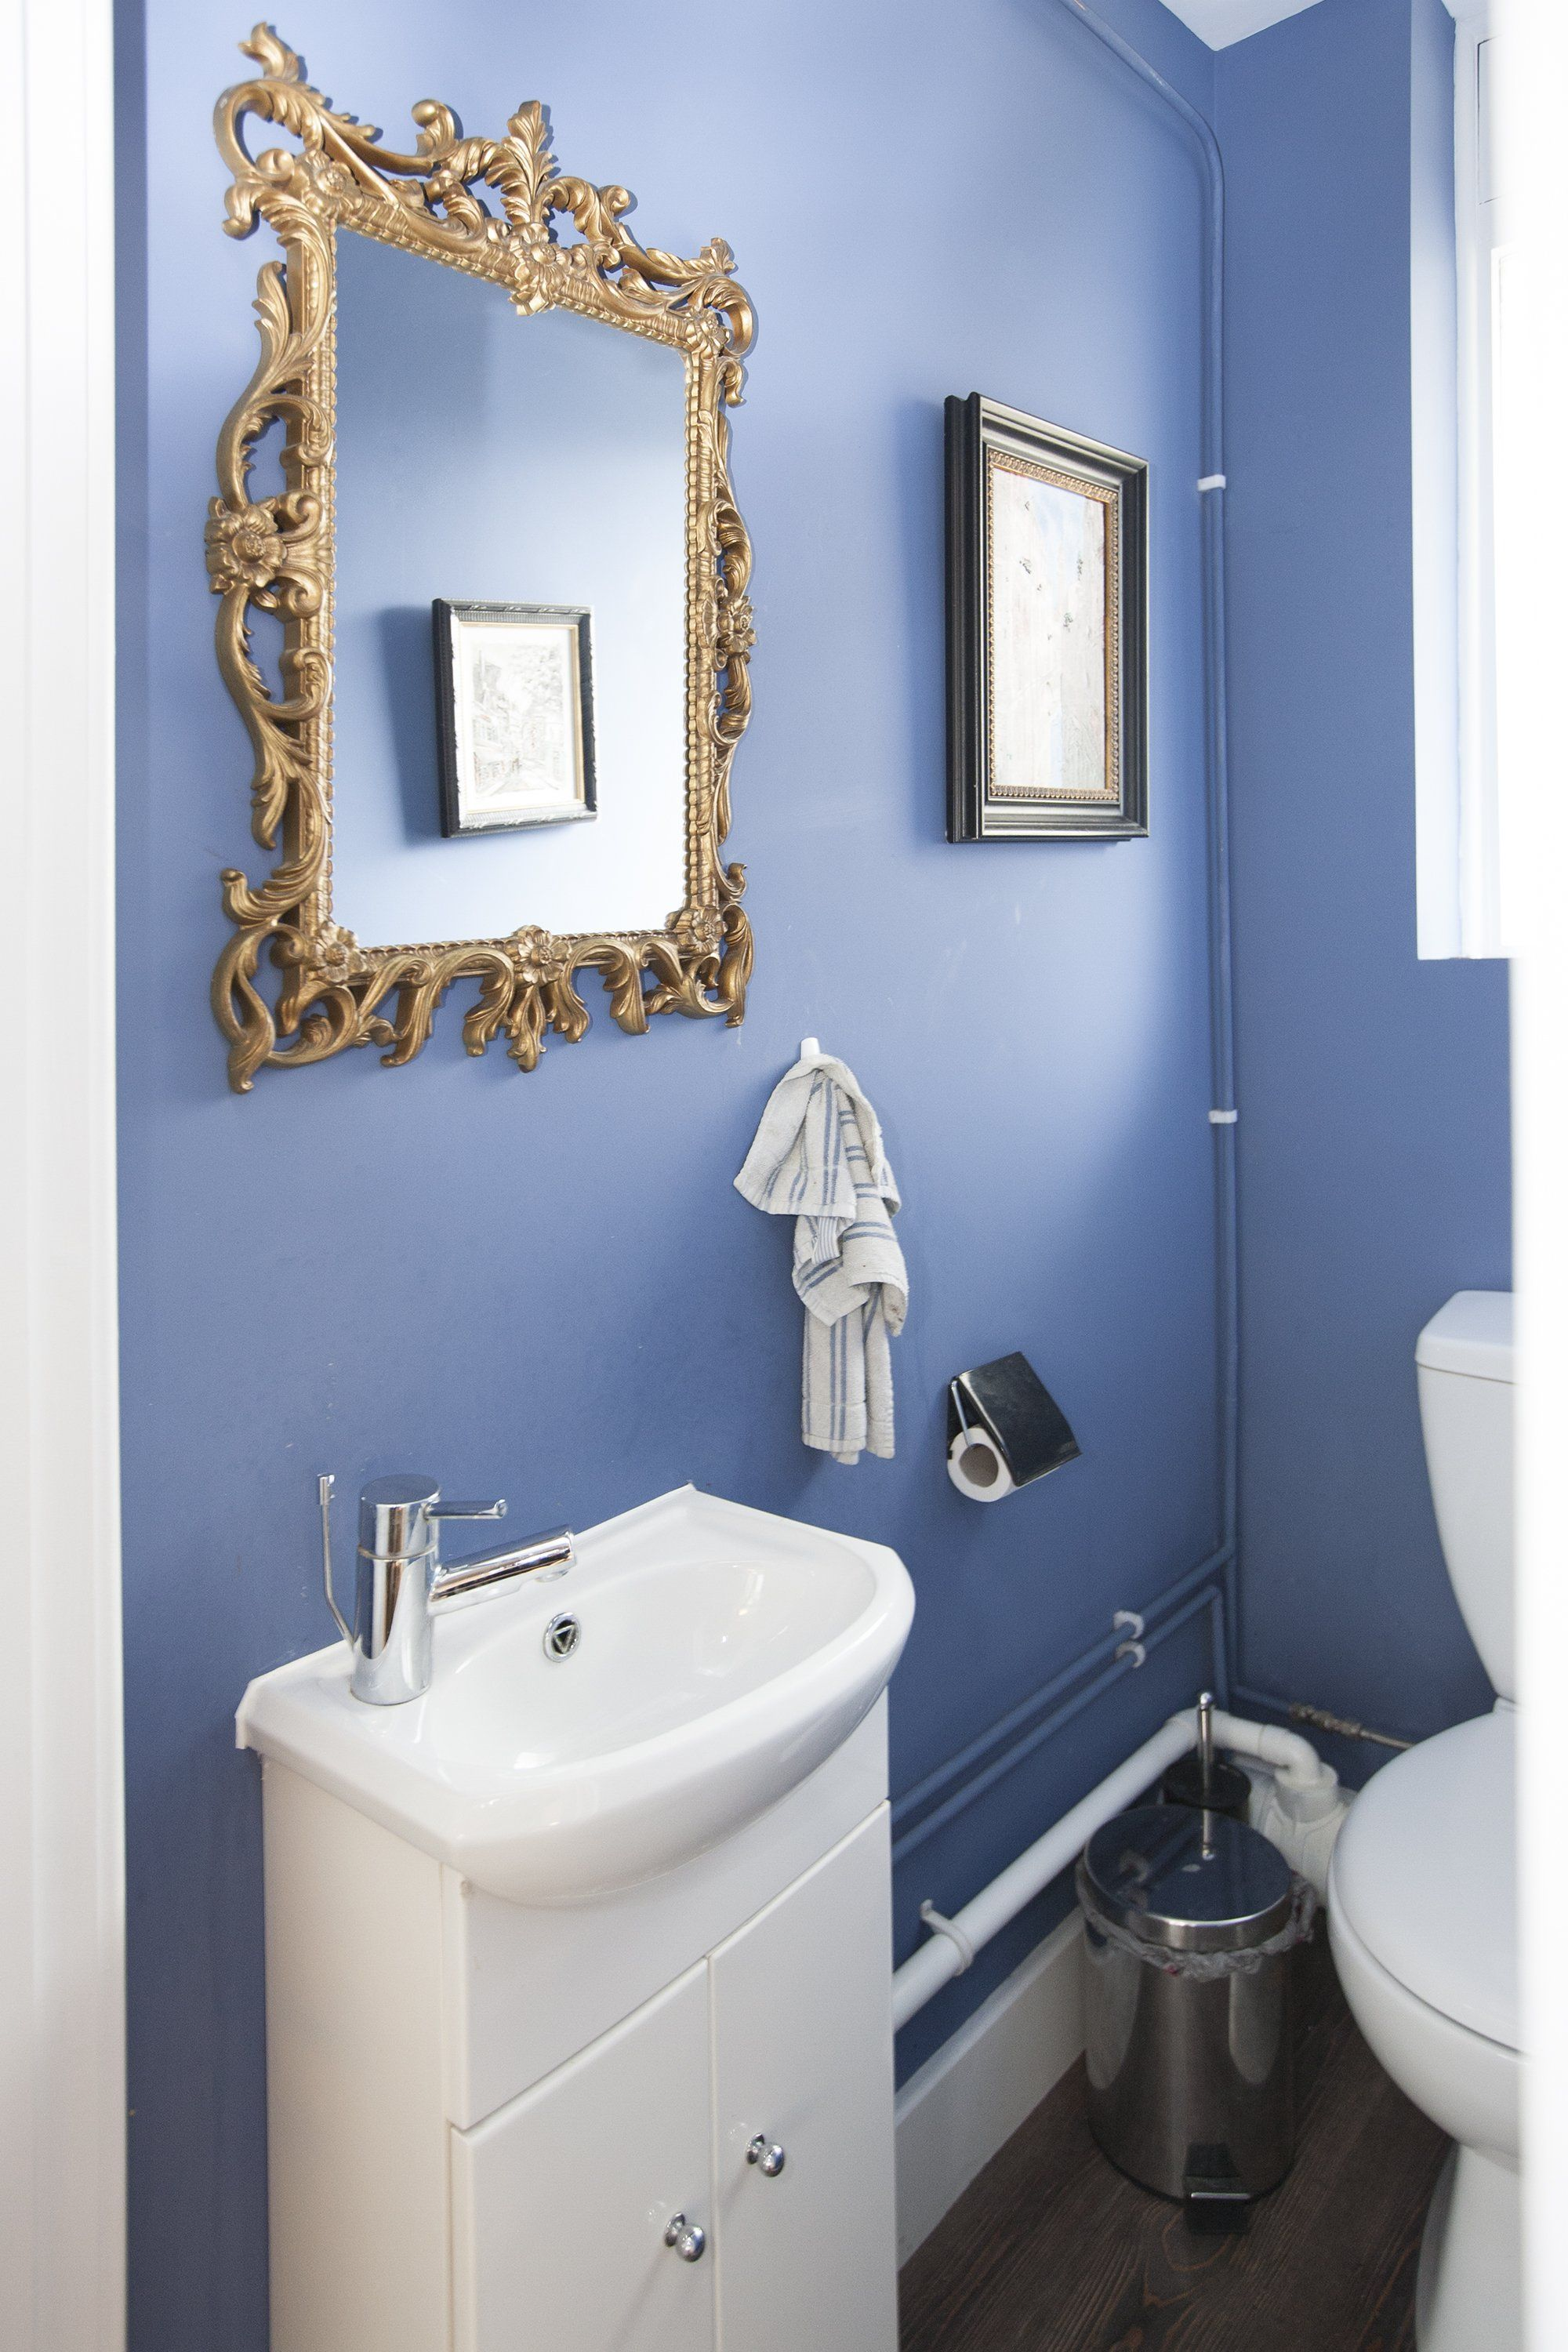 Perfect Paint Colors That Match This Apartment Therapy Photo: SW 2739 Charcoal  Blue, SW 6529